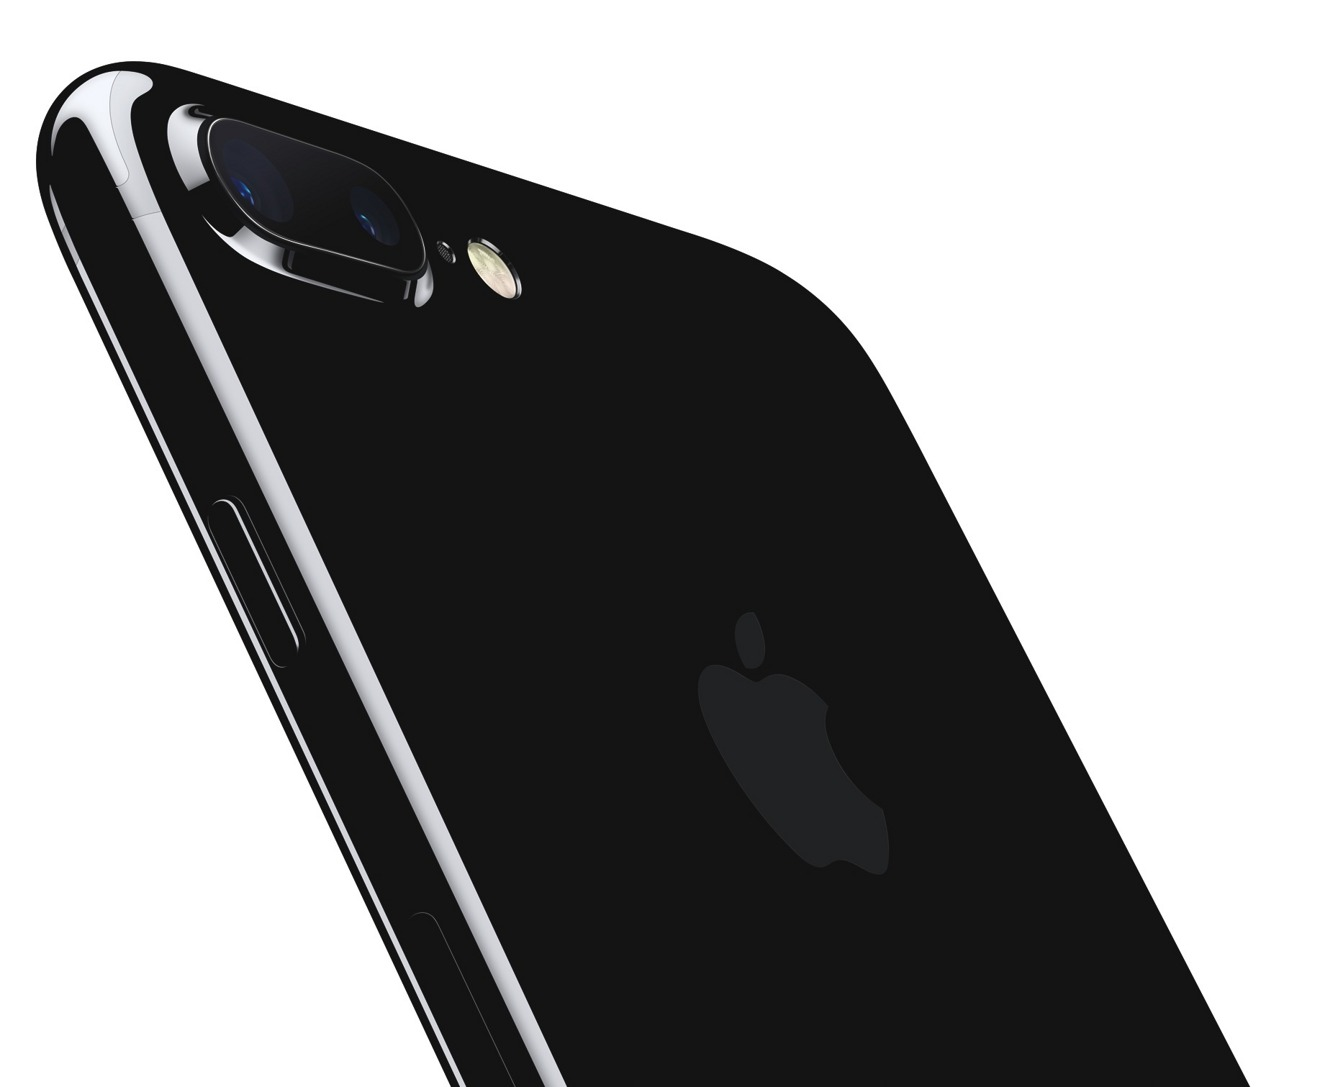 Poll results apple had better be preparing a space black iphone 7 - Editorial Apple S Airpods Iphone 7 Series 2 Watch Out Journalists